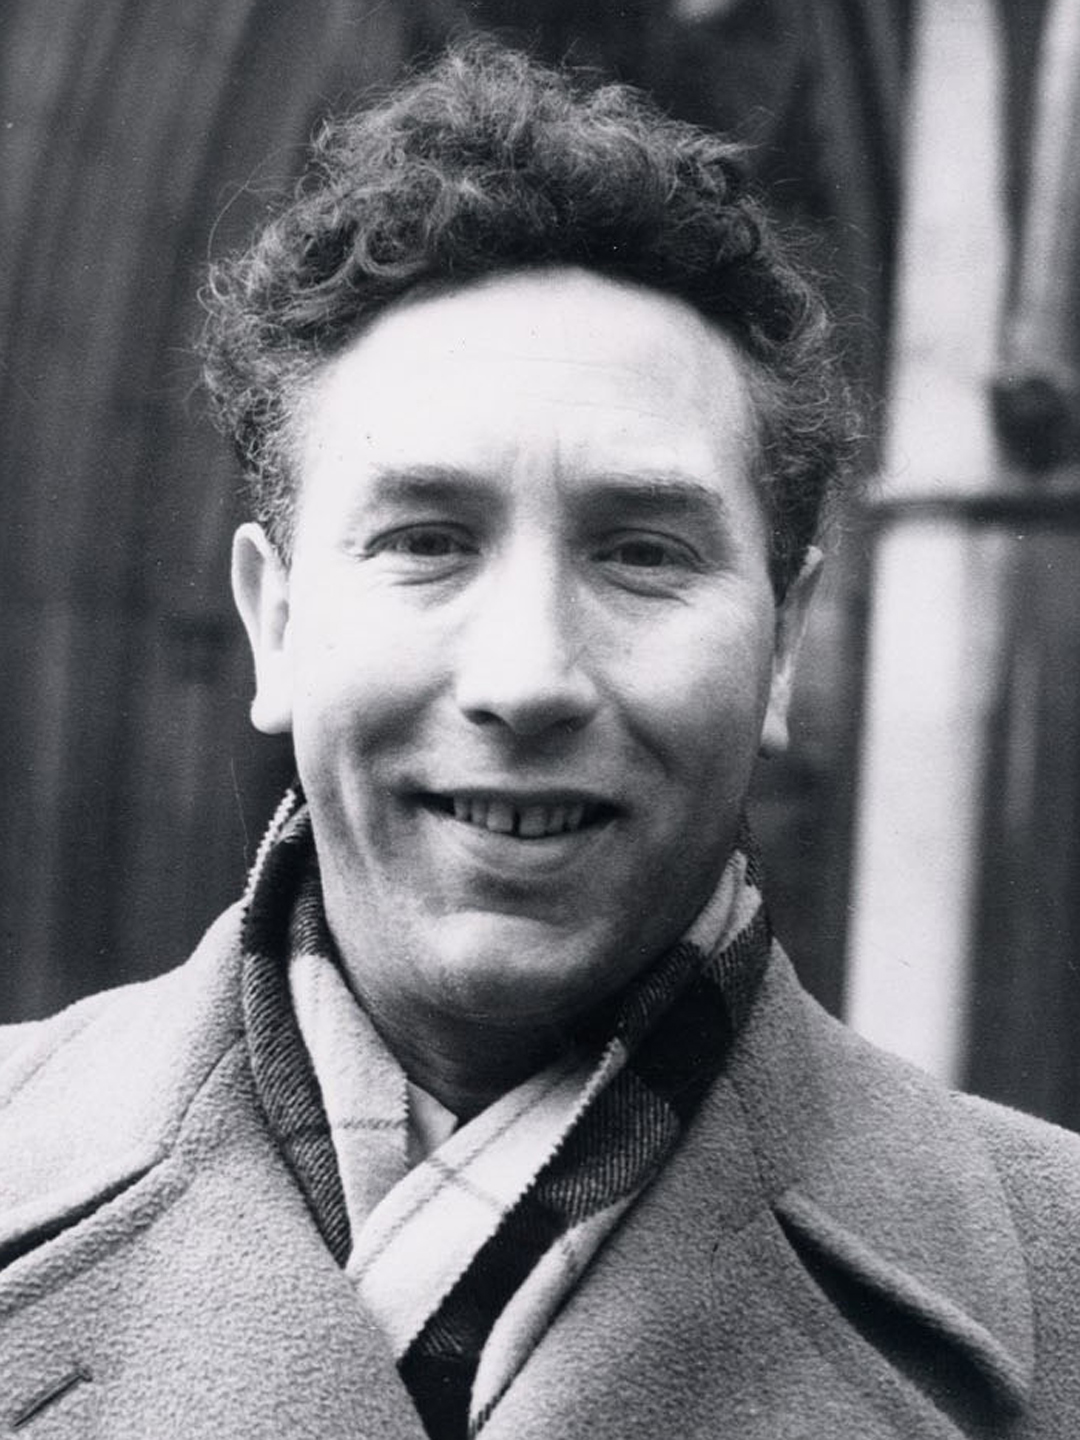 How tall is Frankie Howerd?